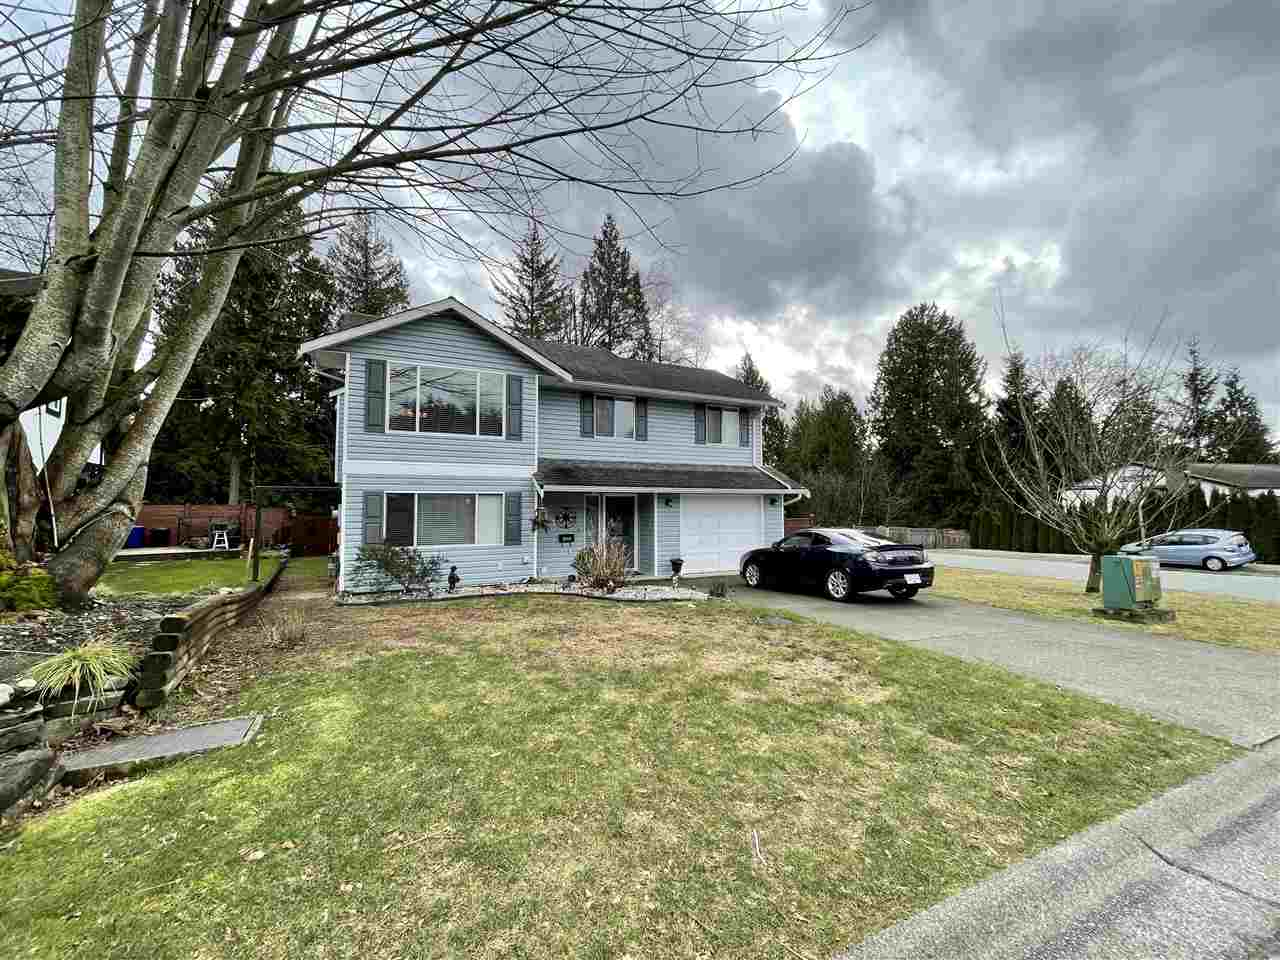 32442 GREBE CRESCENT - Mission BC House/Single Family for sale, 5 Bedrooms (R2543027) - #1